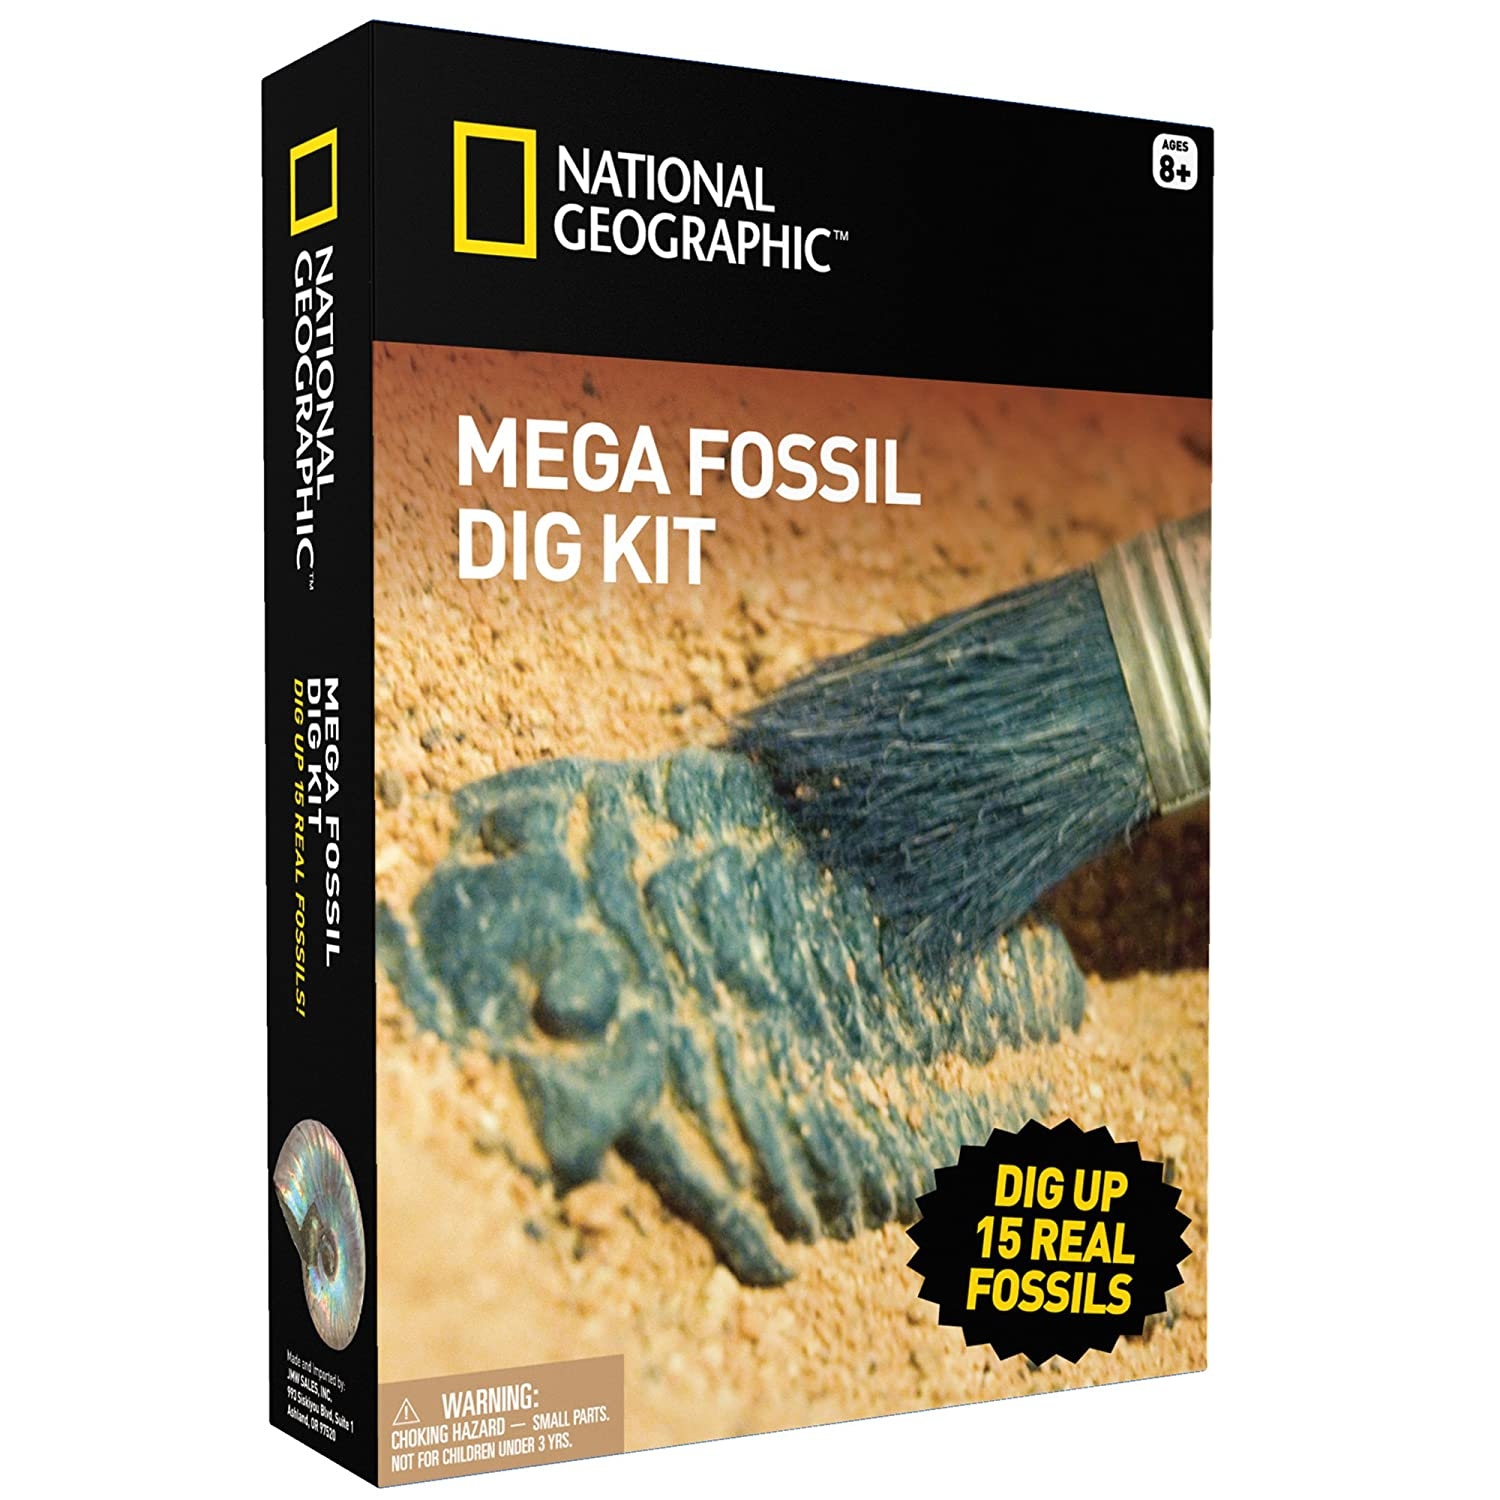 Mega Fossil Mine - Dig Up 15 Real Fossils with NATIONAL GEOGRAPHIC Discover with Dr. Cool NGSUPERFOS